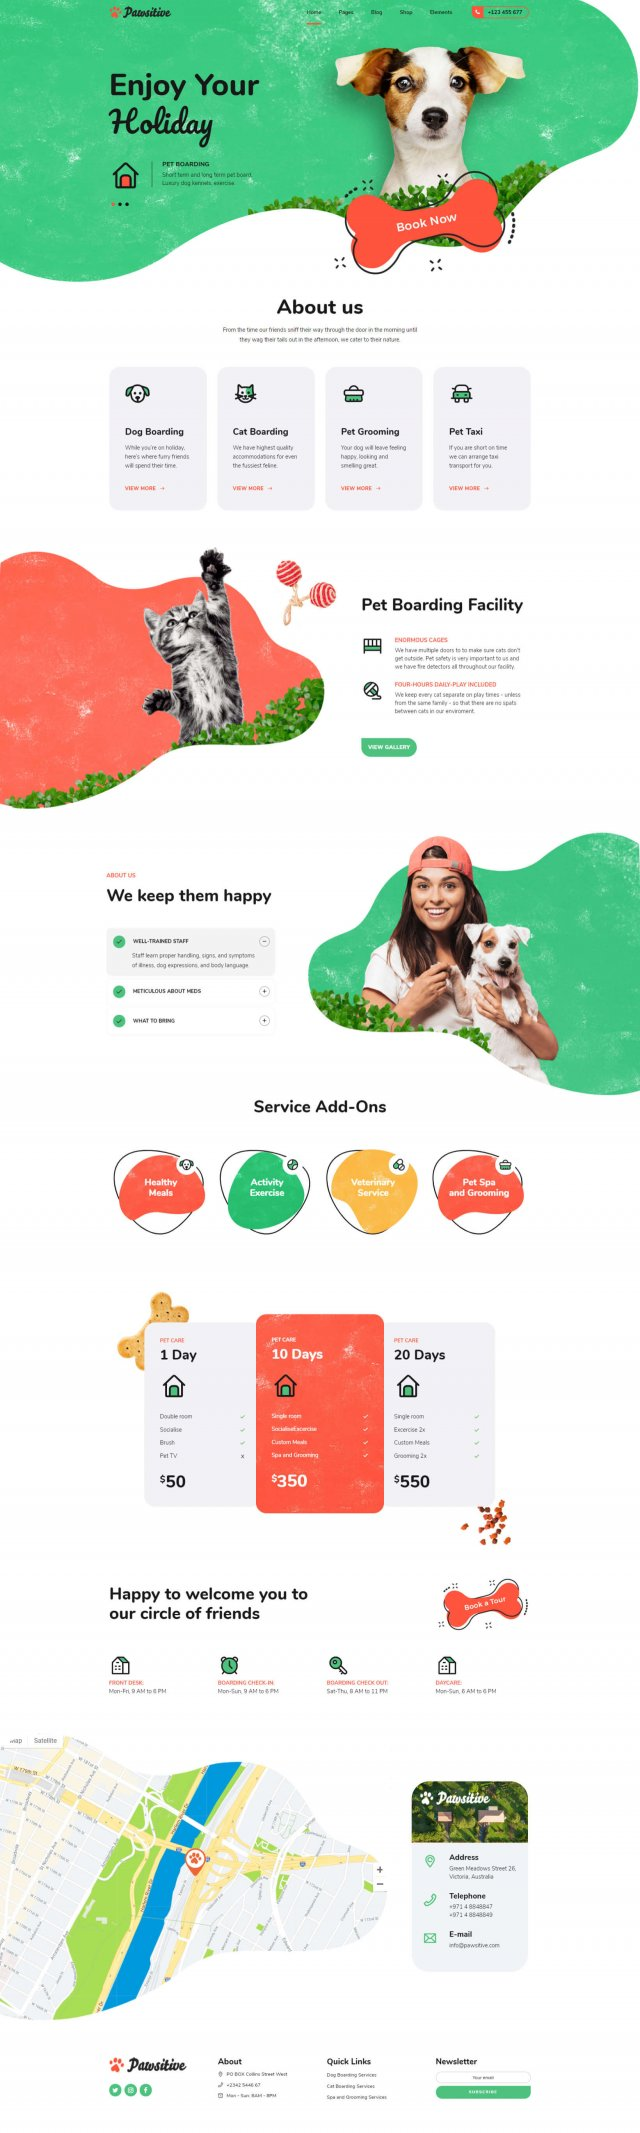 http://pawsitive.bold-themes.com/wp-content/uploads/2019/09/Buddy-Home-02-640x2133.jpg